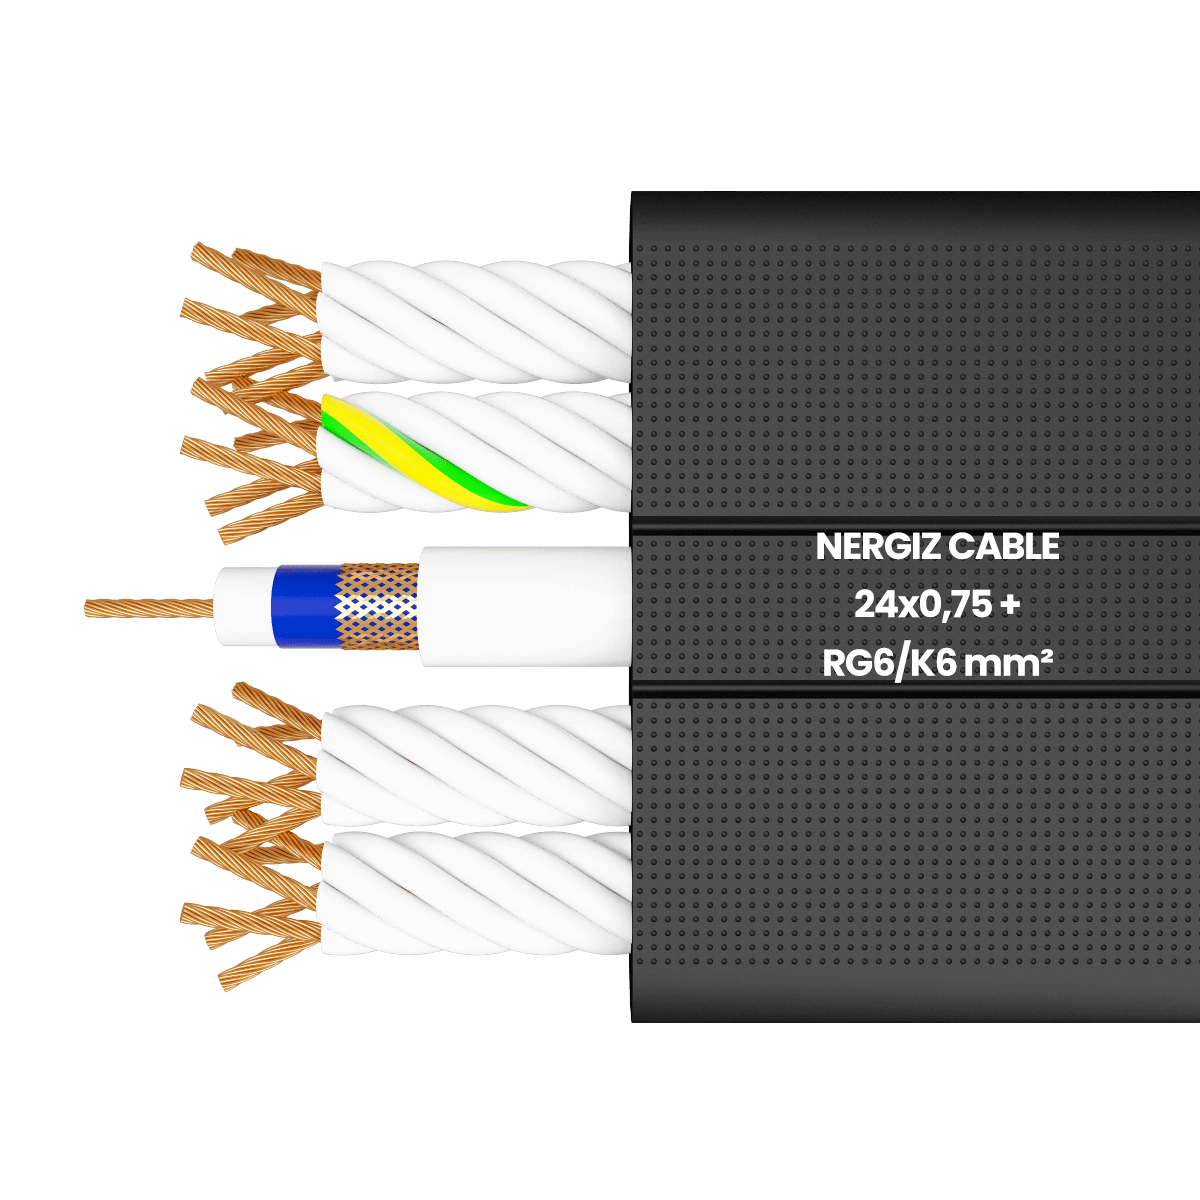 H05VVH6-F 24x0.75 + RG6 mm² Flat Coaxial Elevator Cable